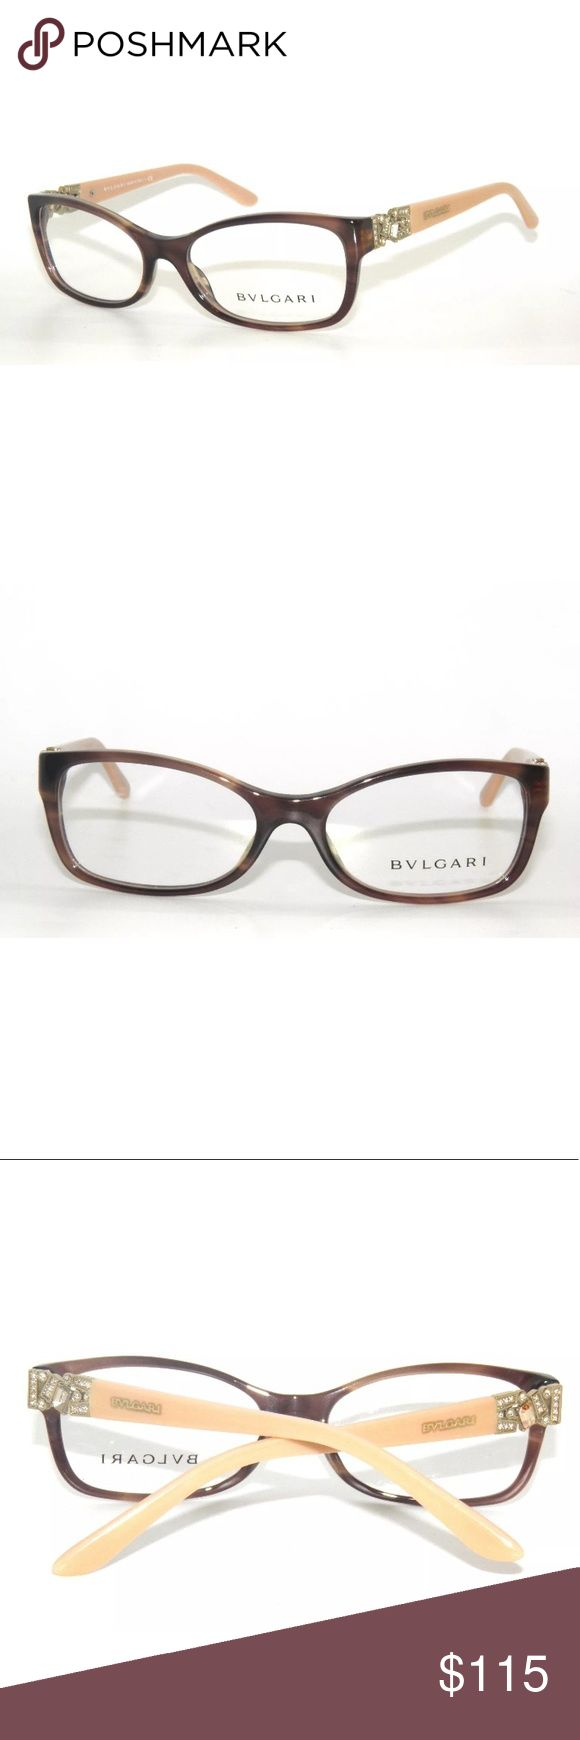 bvlgari 4069B Striped Brown Eyeglasses Frame 54mm In good condition is missing a stone at the left temple. Comes with original bvlgari Case. Bulgari Accessories Glasses